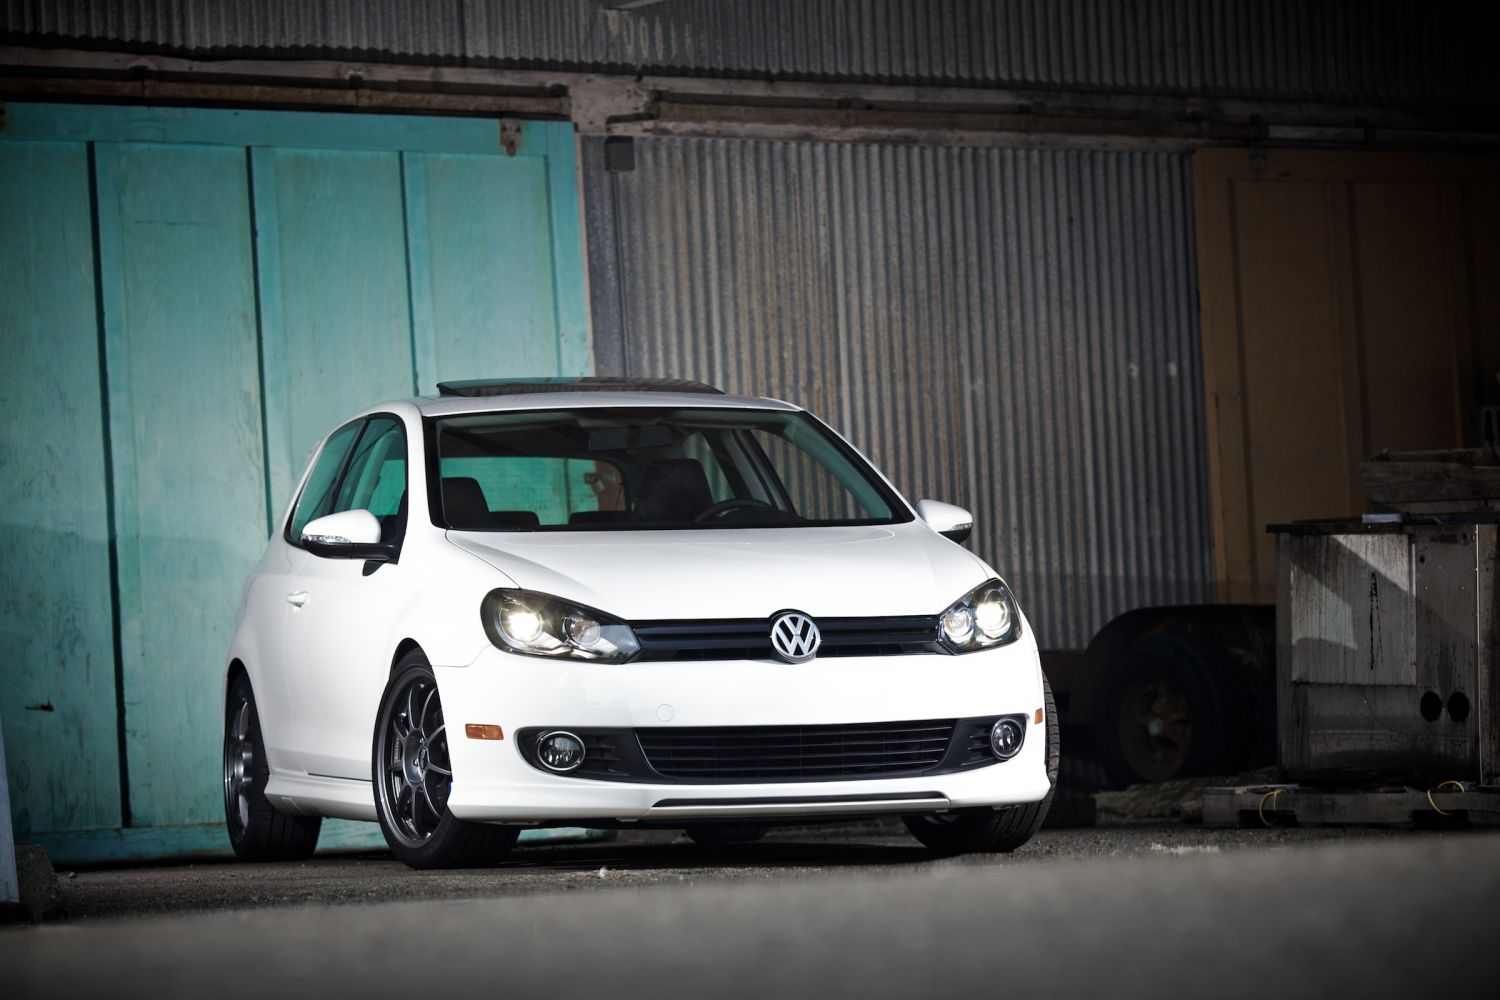 H&R Project Golf 6 TDI | H&R Special Springs, LP.